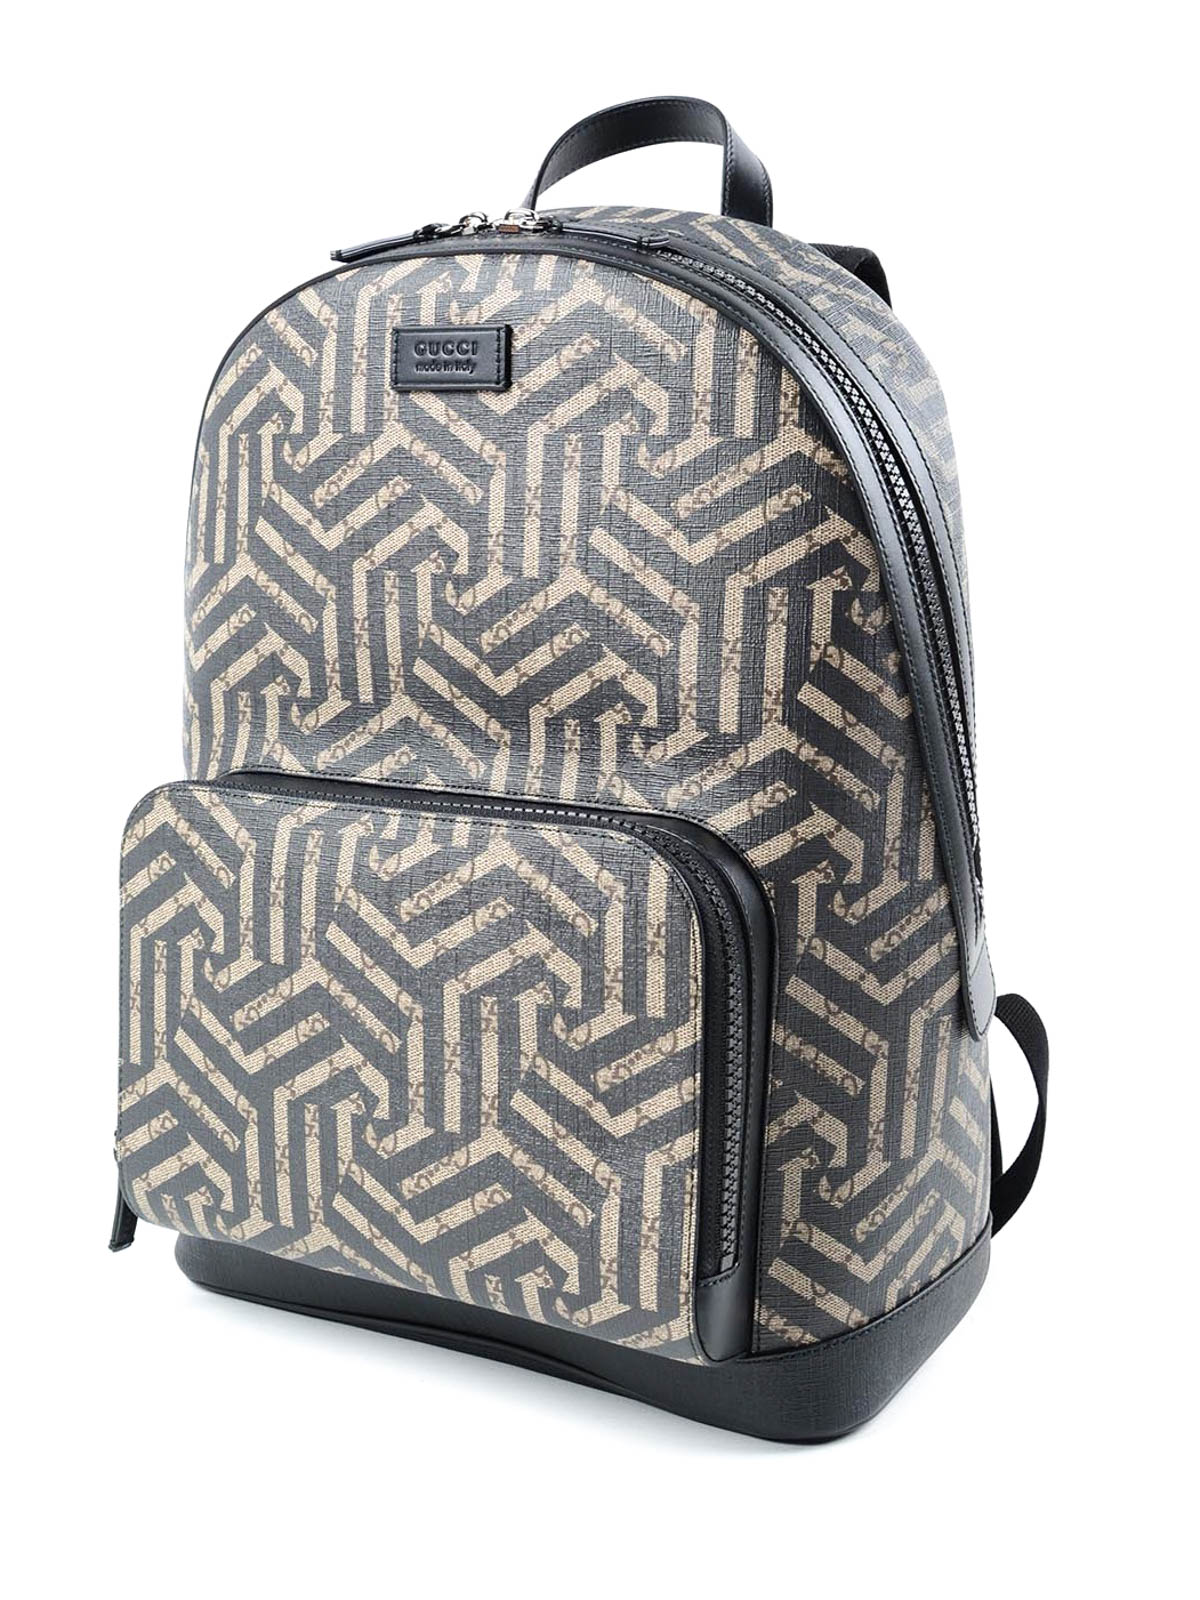 a275549d1c0 4 Source · Gucci Caleido print GG Supreme backpack backpacks 406370 KVW3X